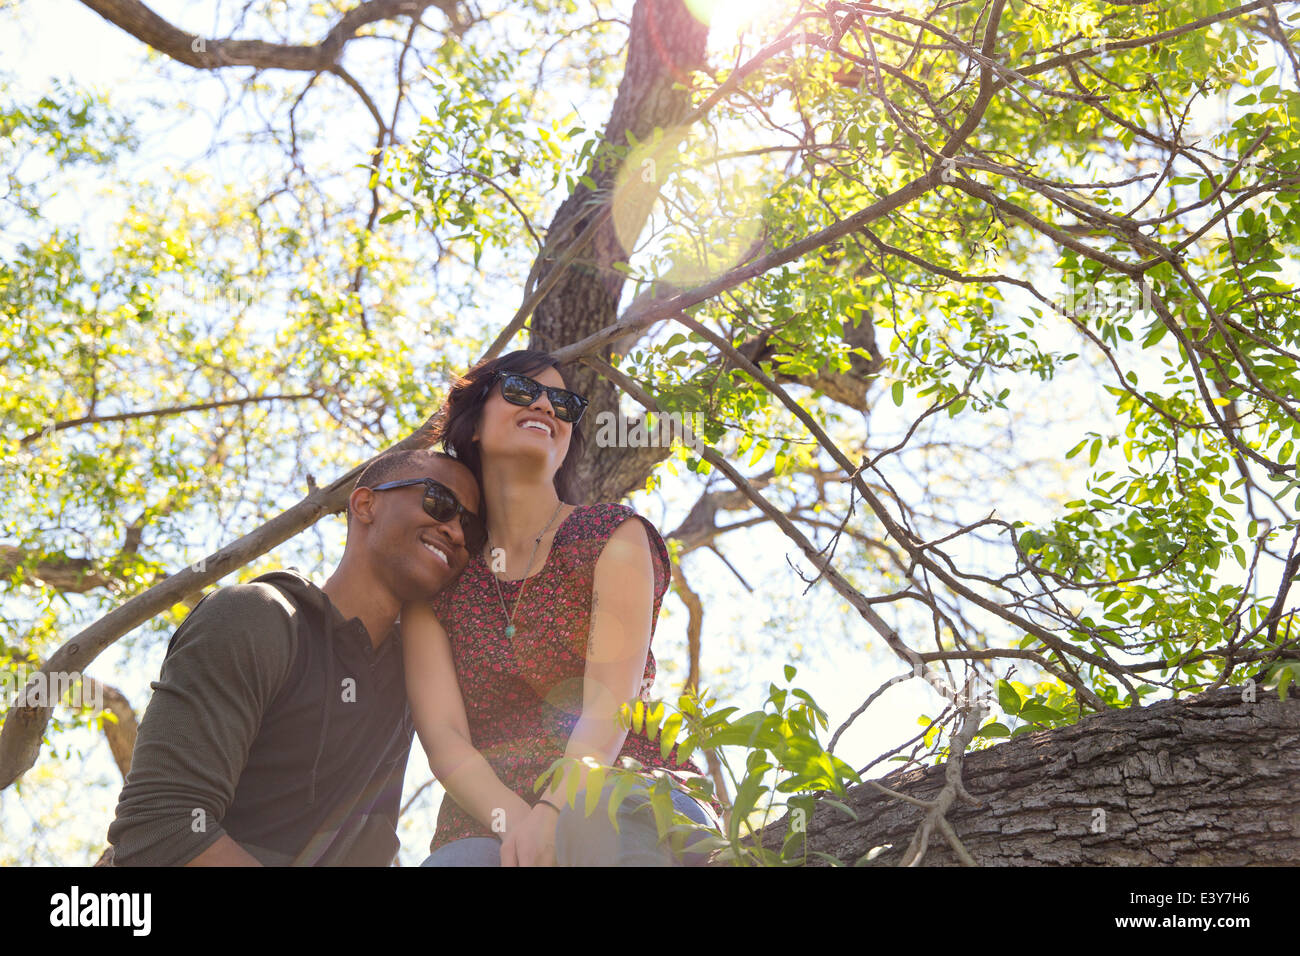 Romantic young couple gazing from tree - Stock Image